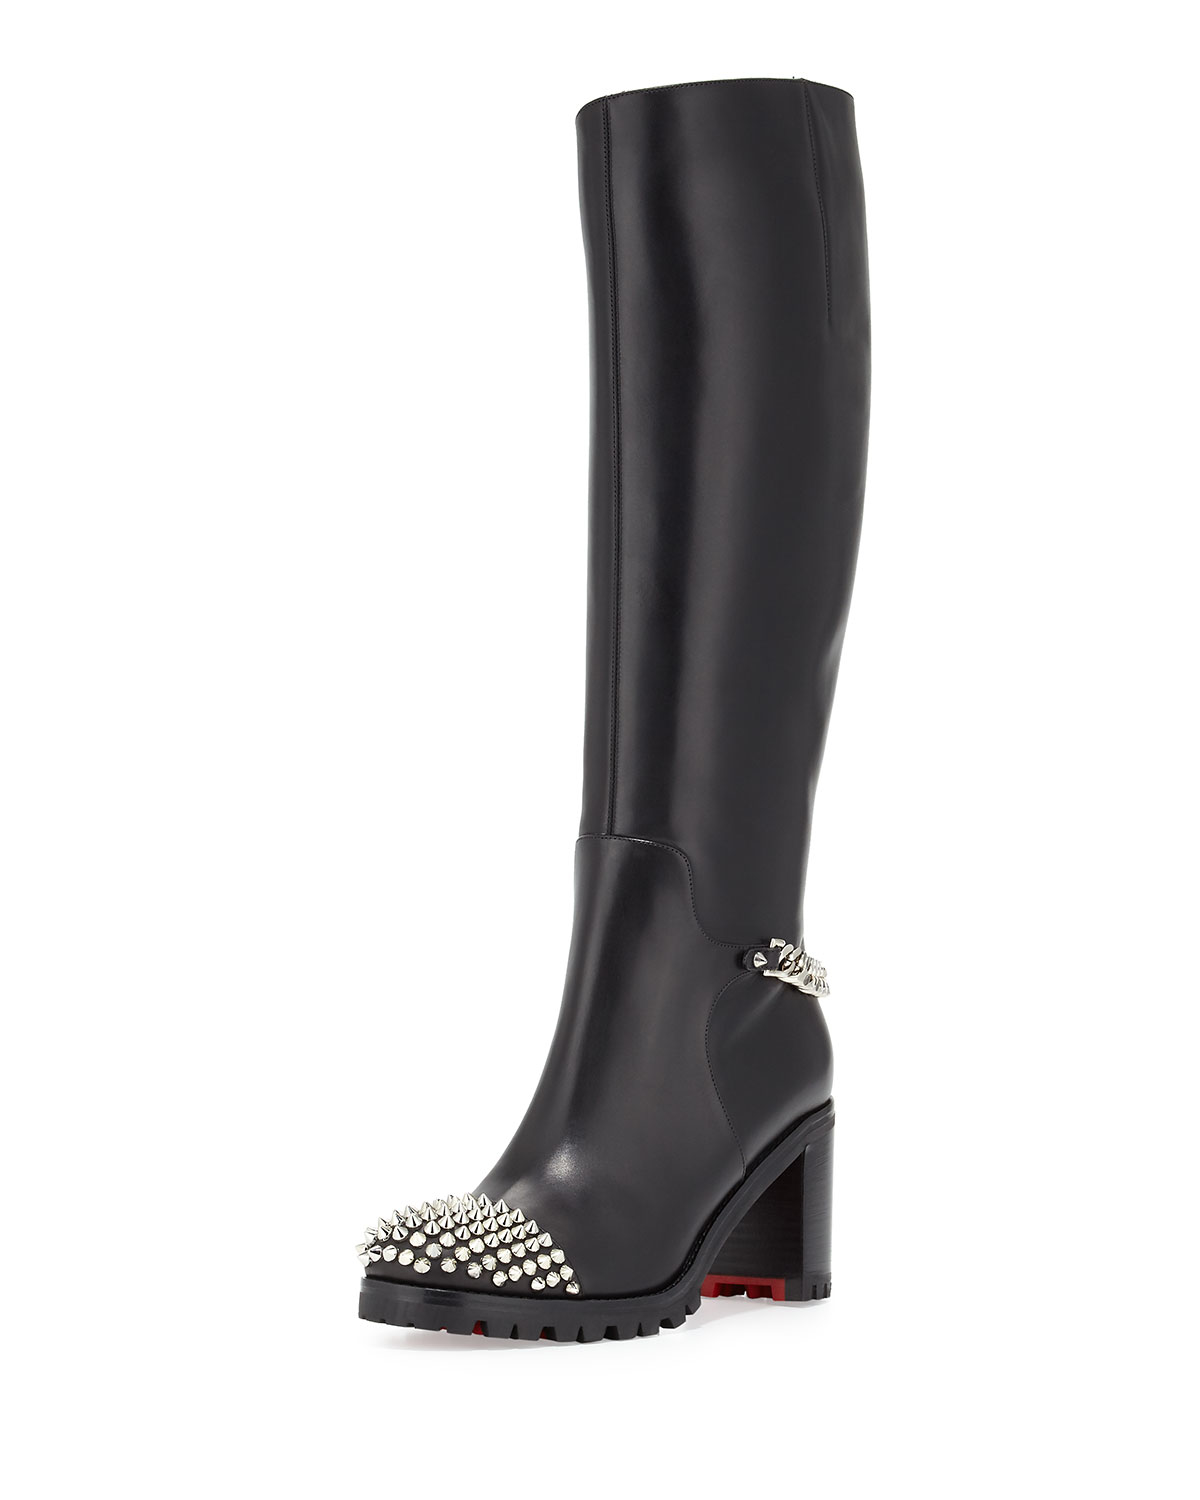 Lyst Christian Louboutin Napaleona Spiked Toe Red Sole